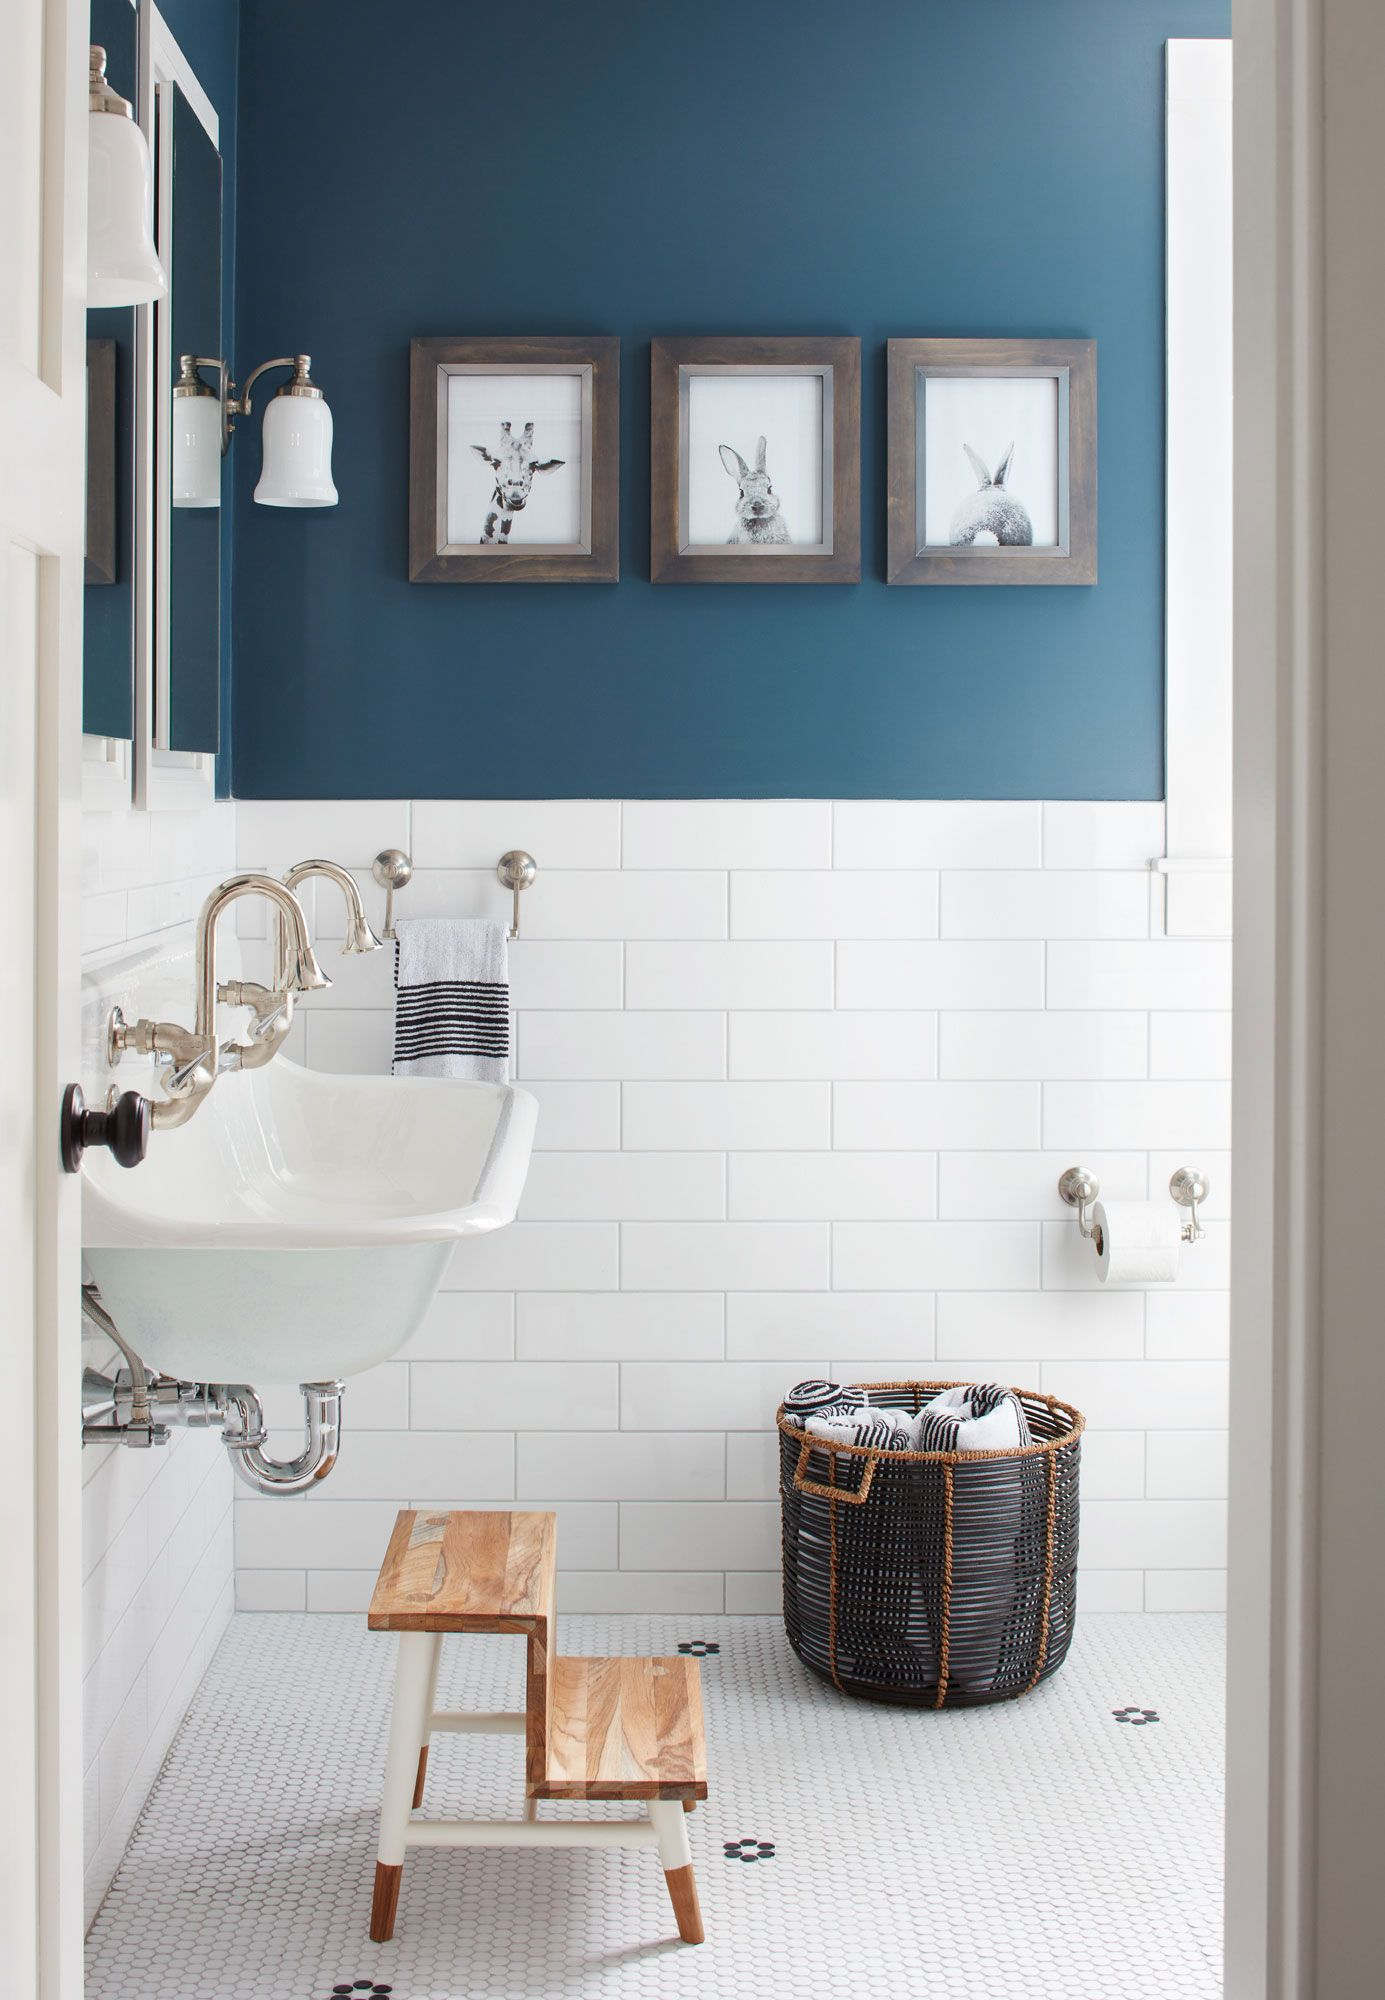 White Subway Tile Blue Accents Trendy Bathroom Bathroom Inspiration Bathrooms Remodel